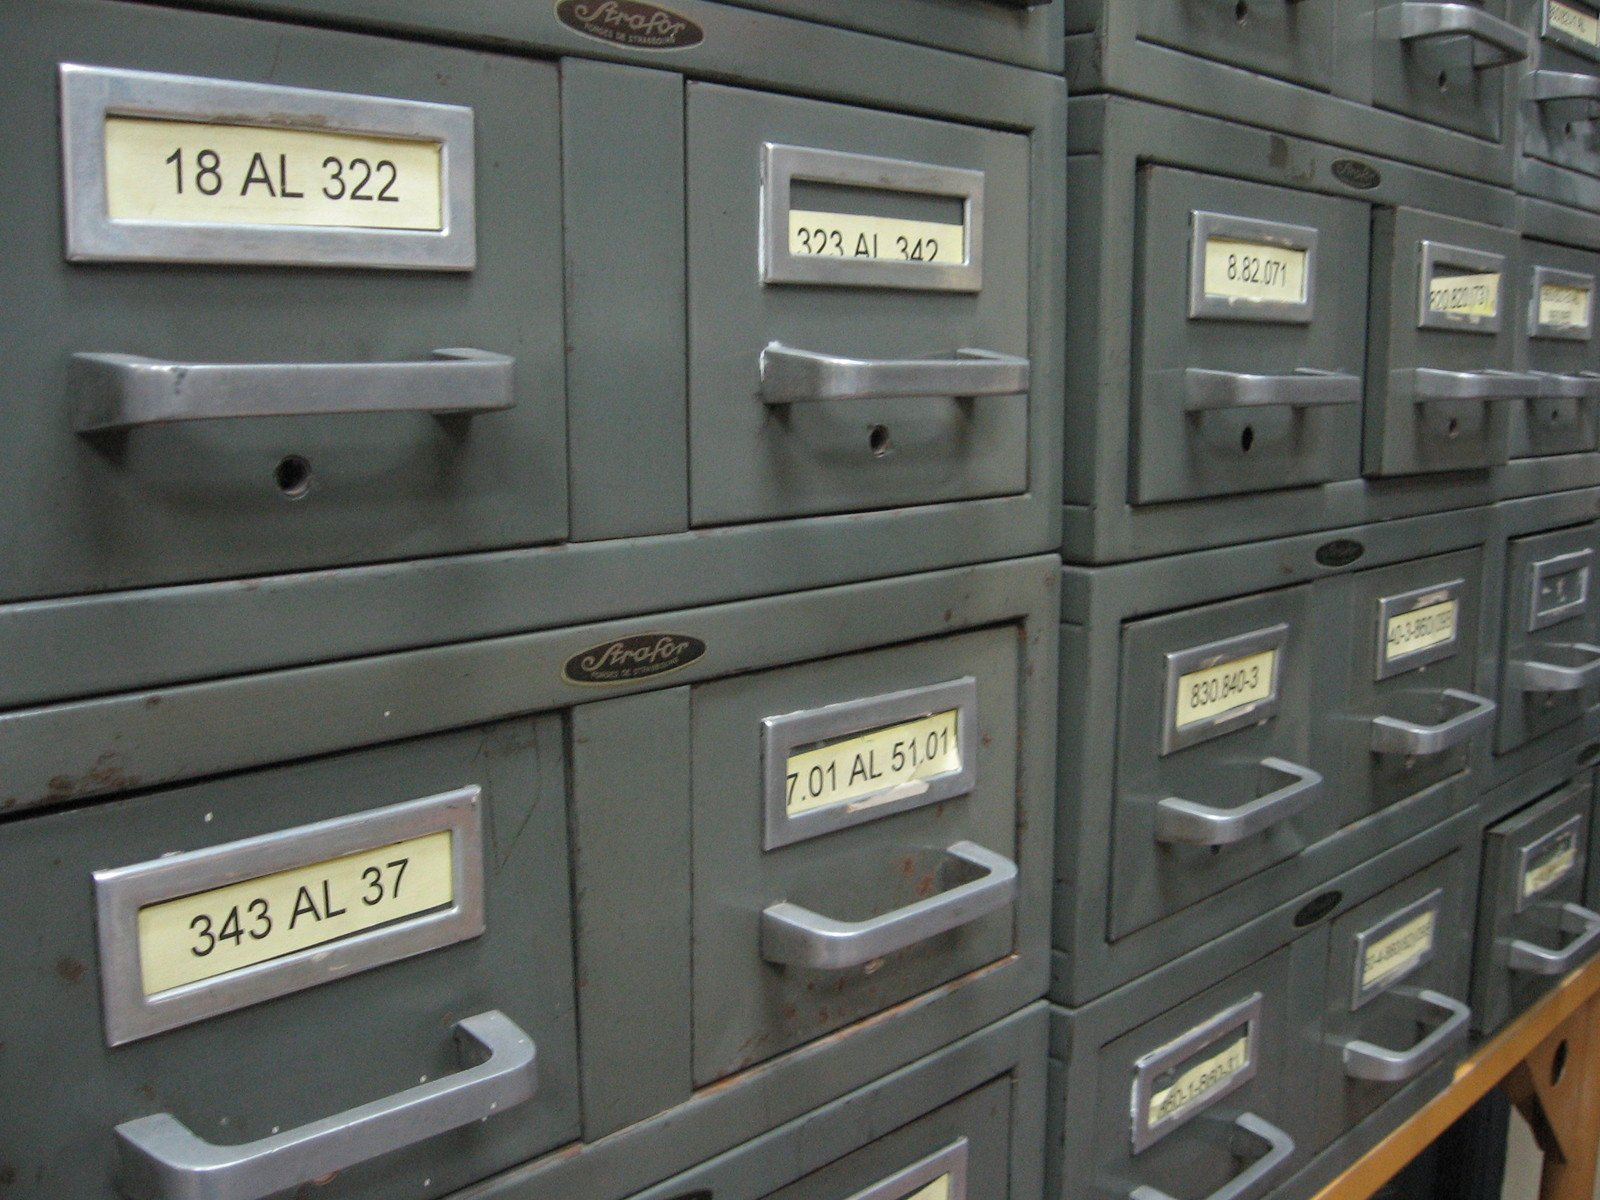 Files and archives